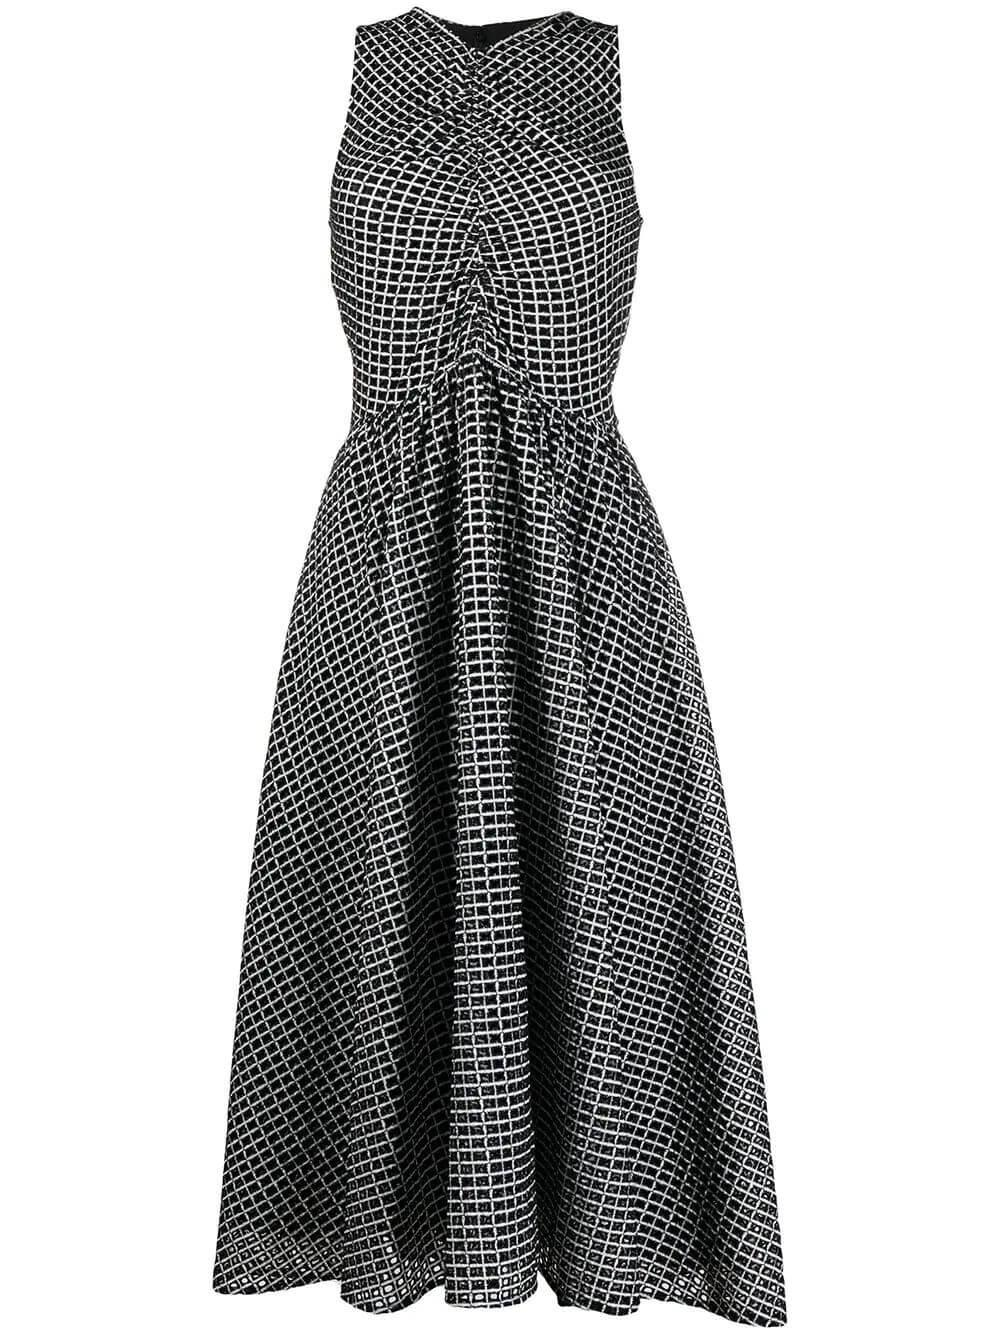 Broderie Anglaise Printed Dress Item # WL2123165